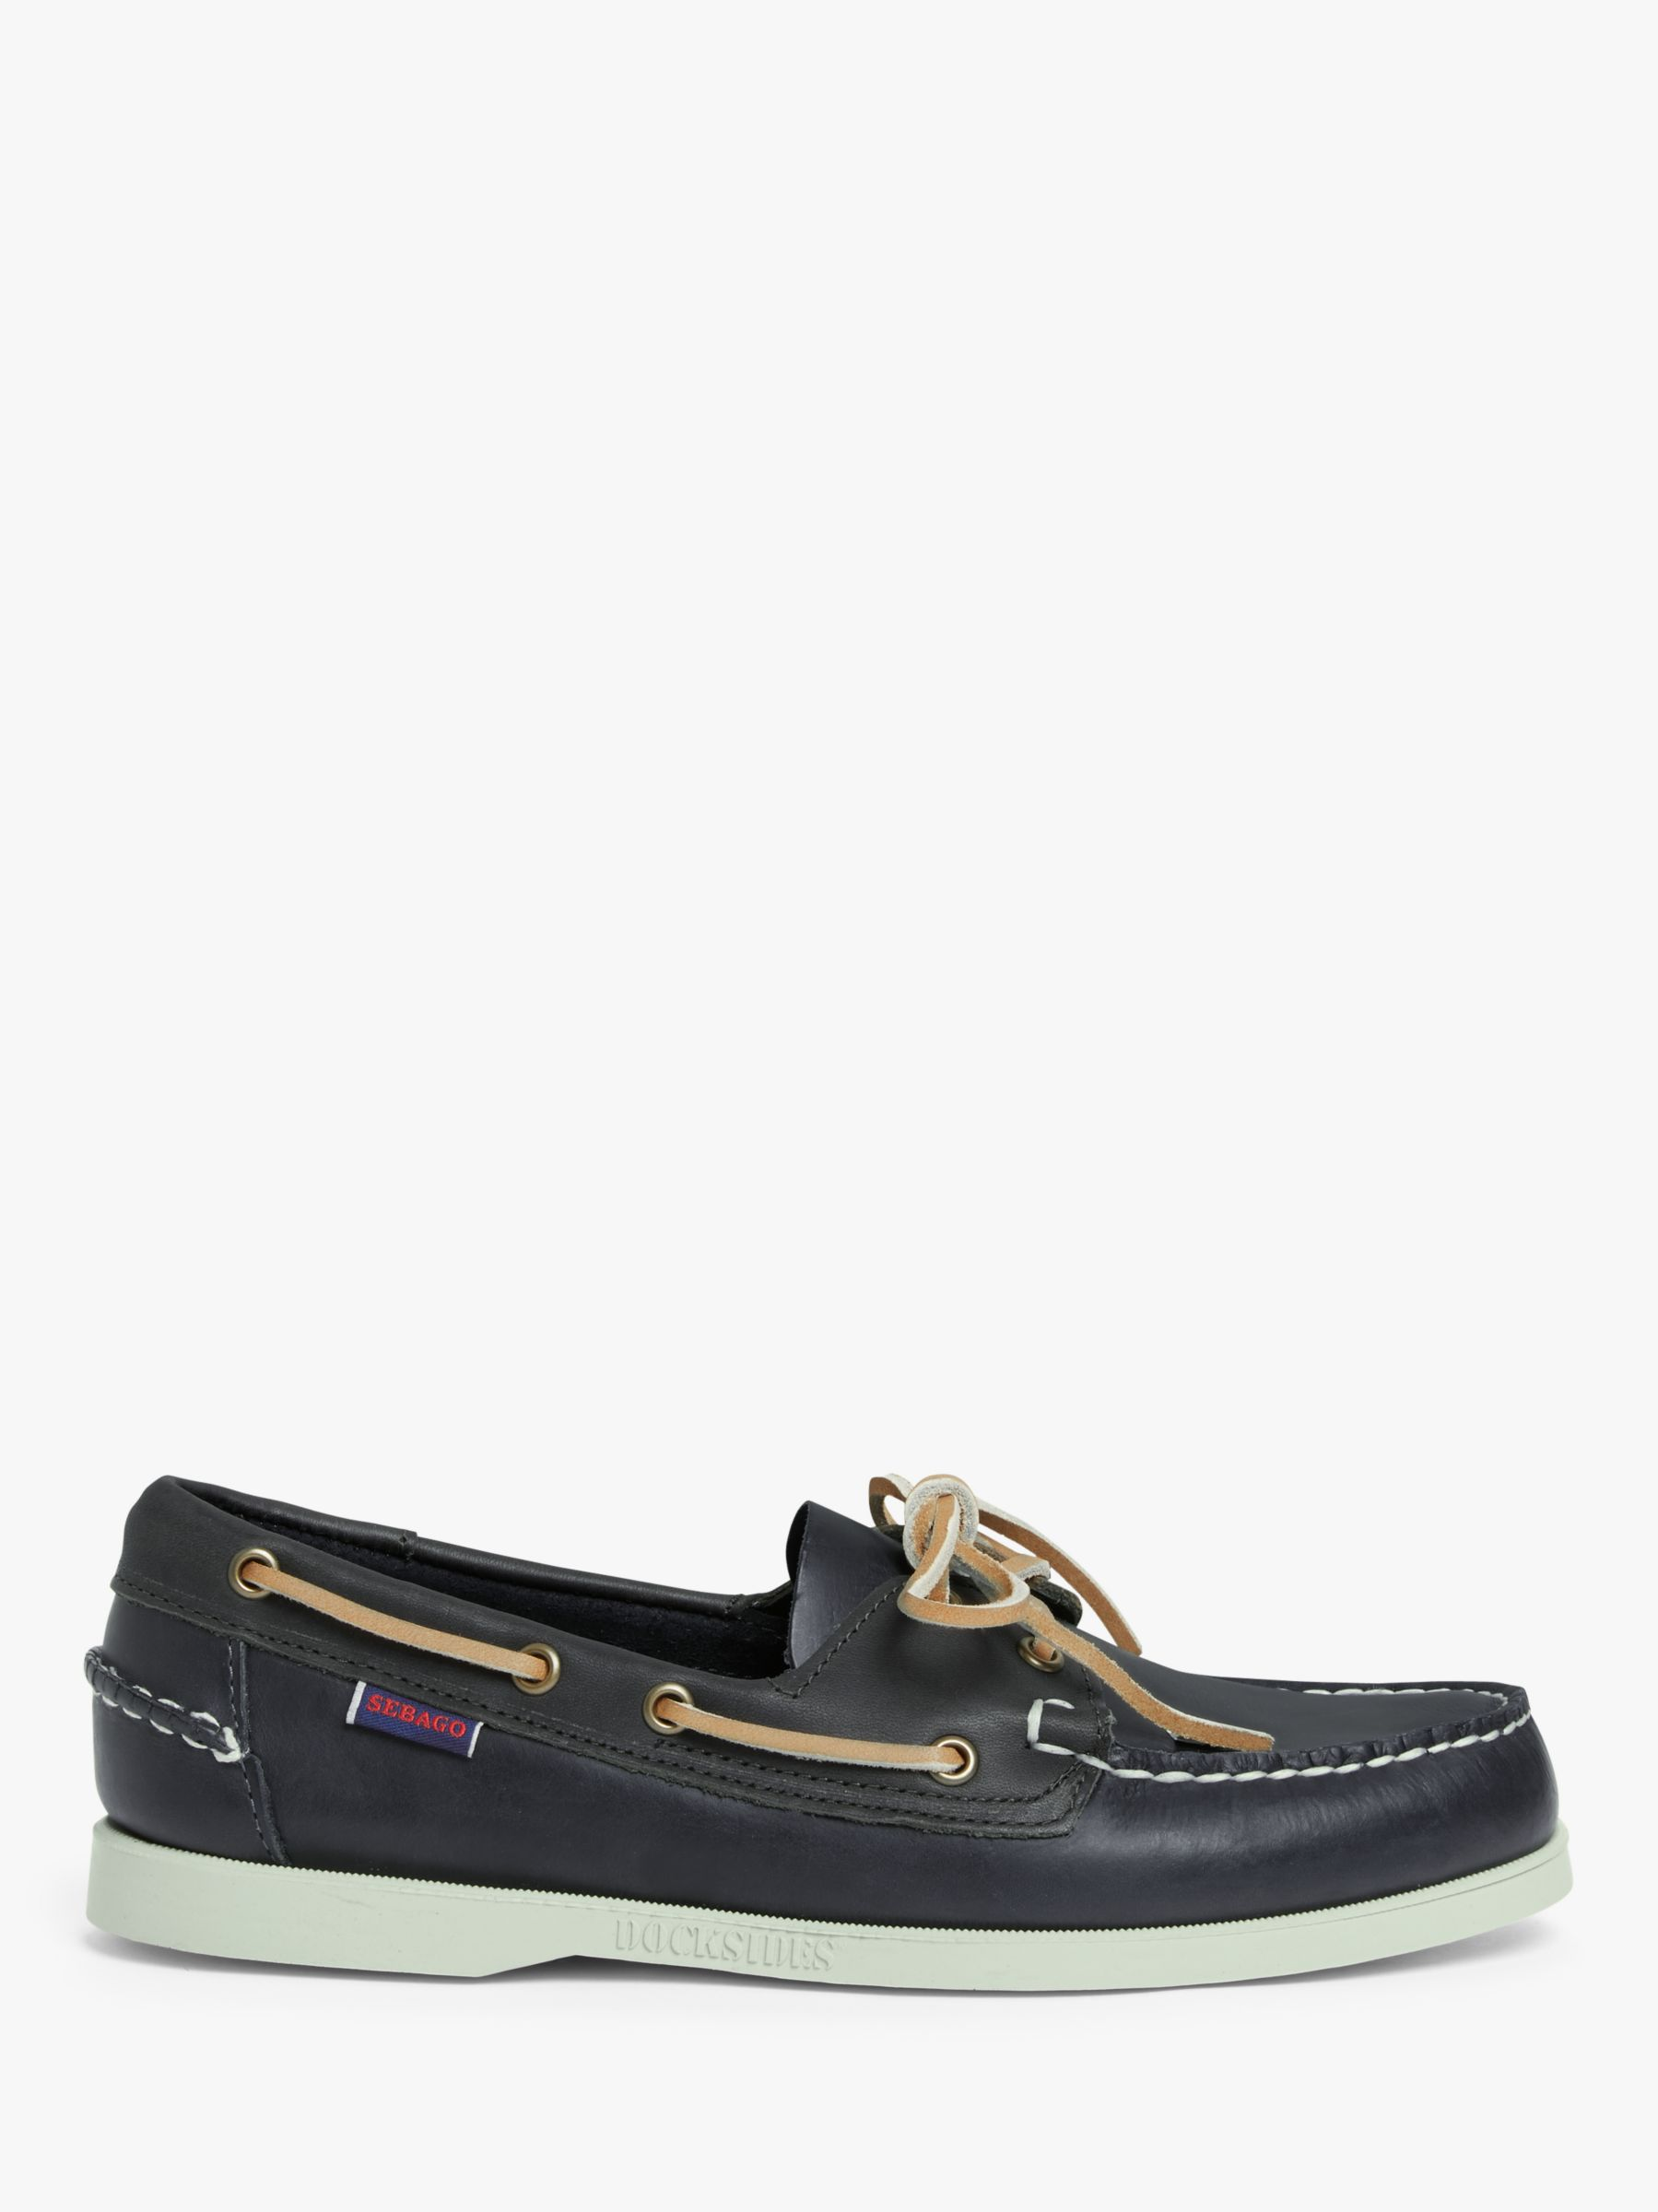 Sebago Sebago Portland Dockside Leather Boat Shoes